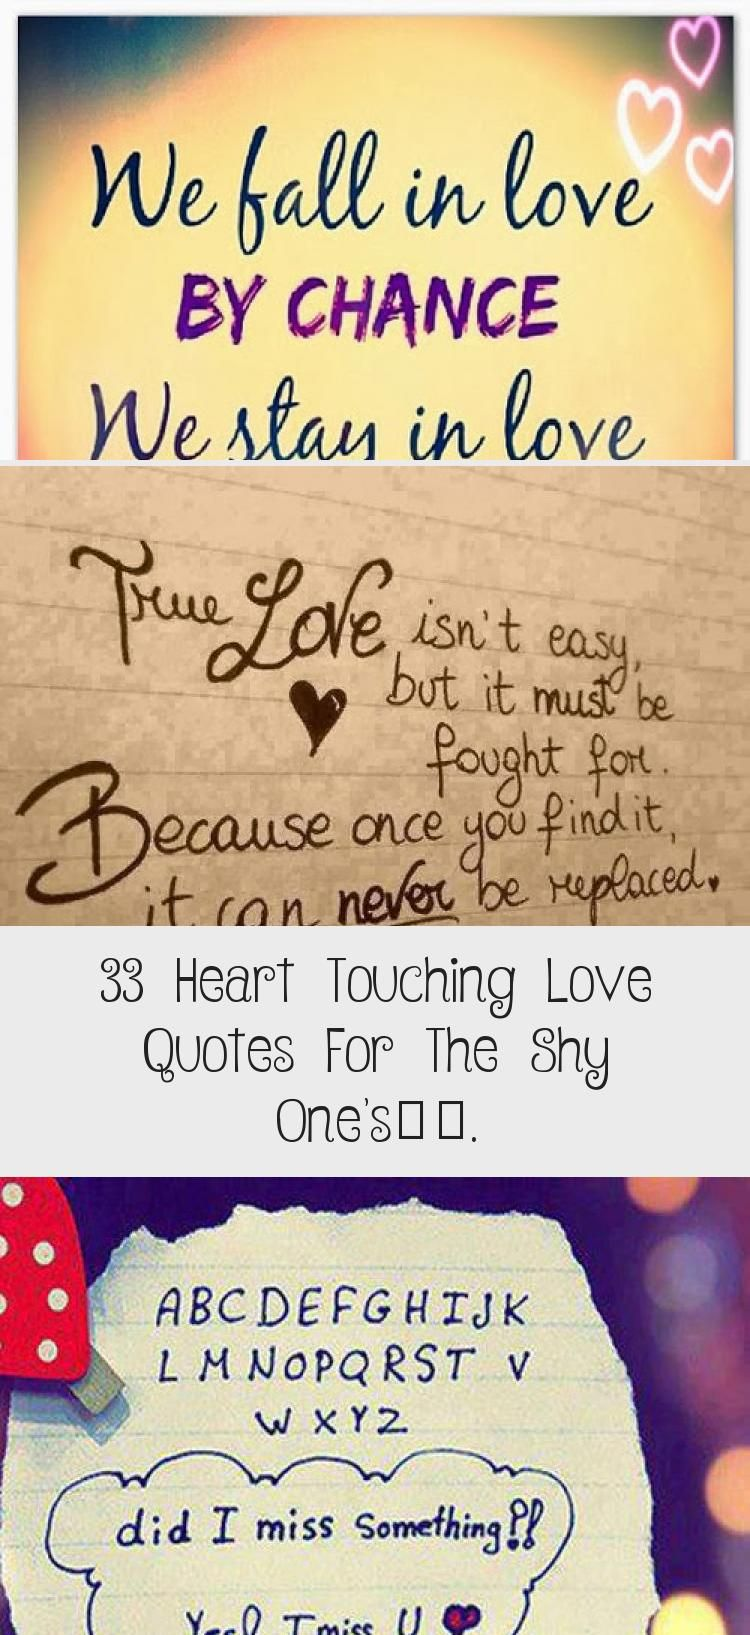 Cute Love Quotes For Him From The Heart Google Search Stronglovequotes Foreverlovequotes Truelov Strong Love Quotes Heart Touching Love Quotes Love Quotes